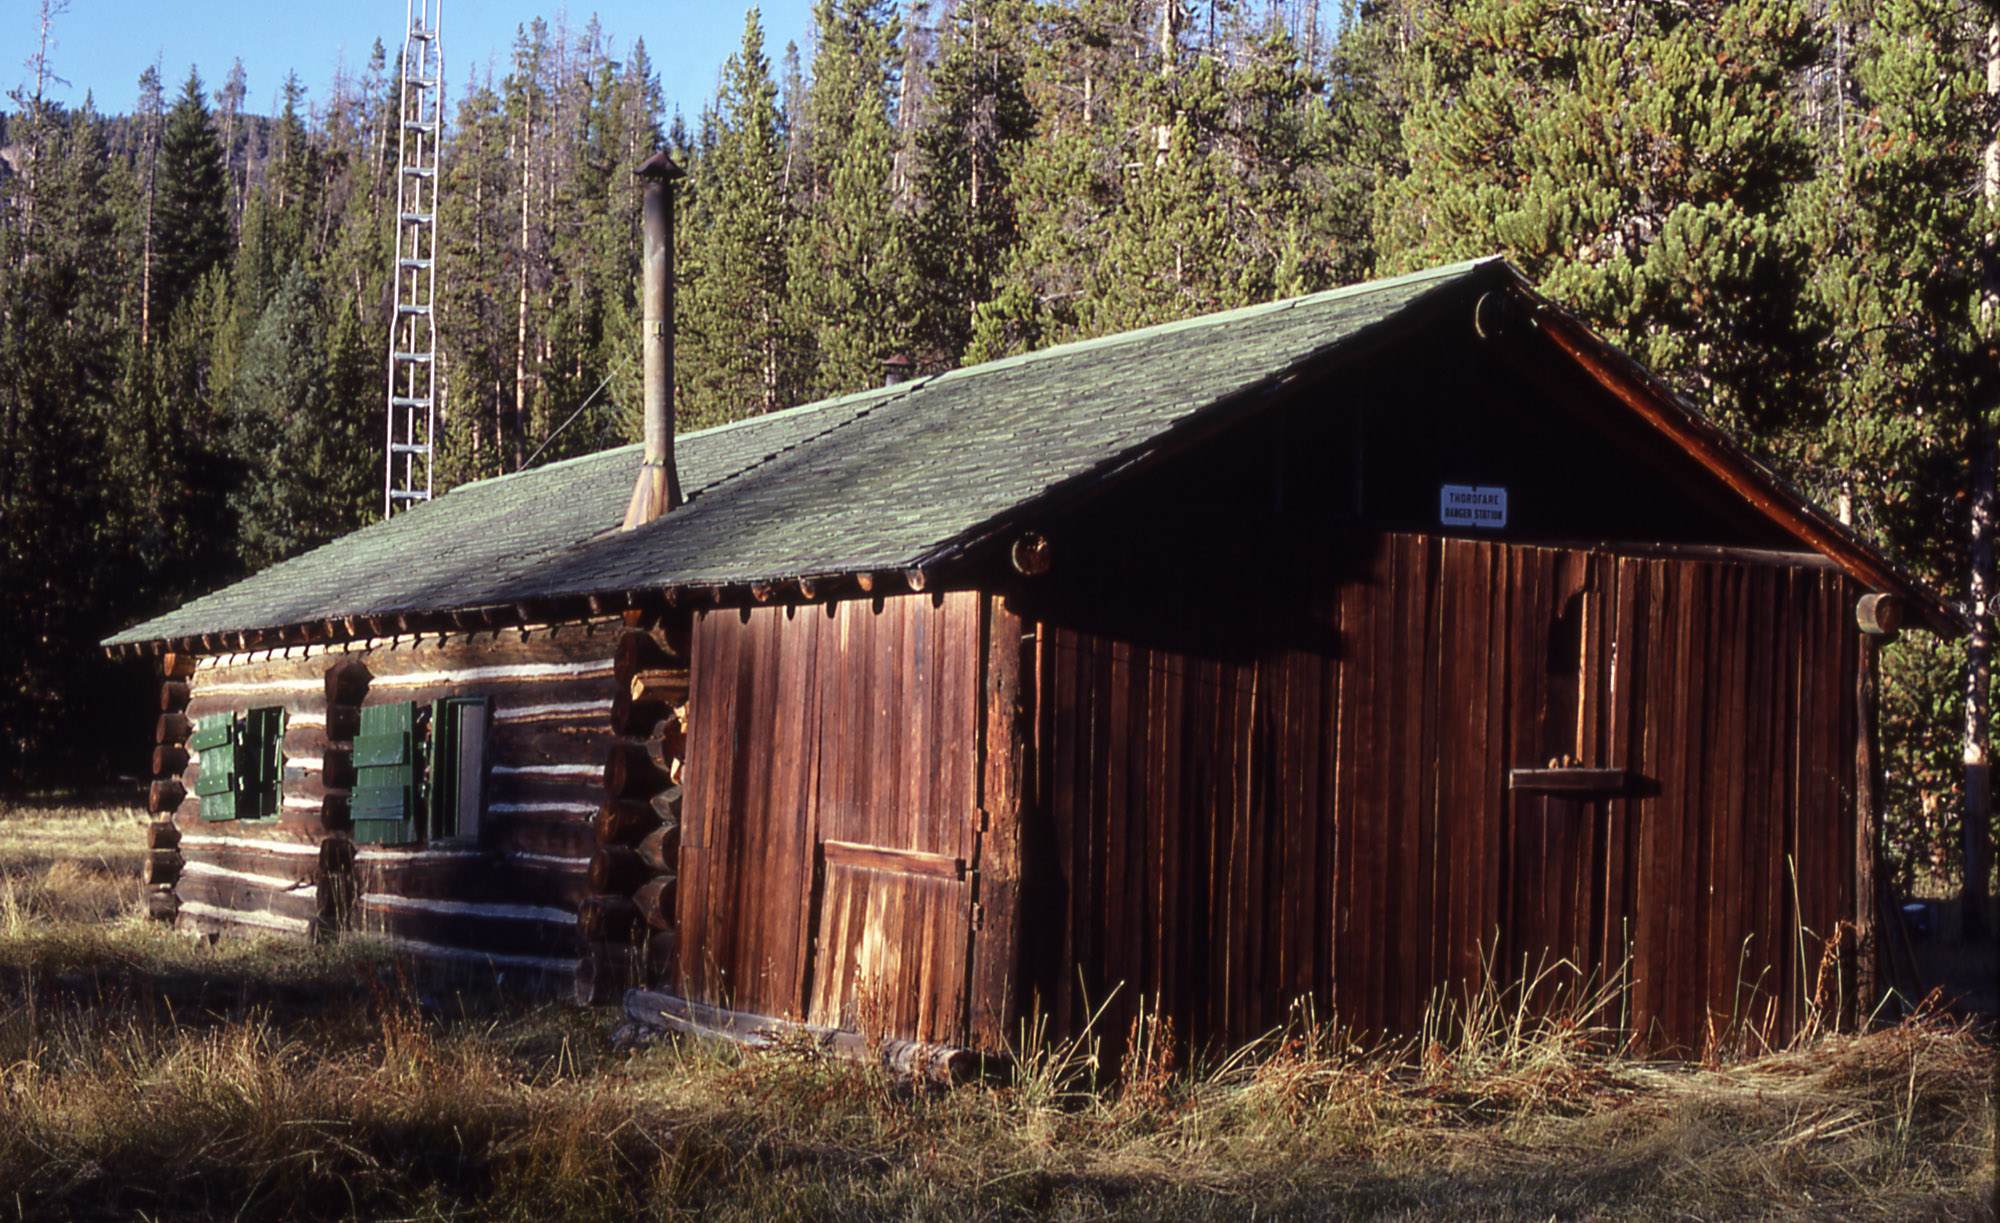 Marvelous photograph of Thorofare Patrol Cabin United States Tourist Information with #186CB3 color and 2000x1223 pixels